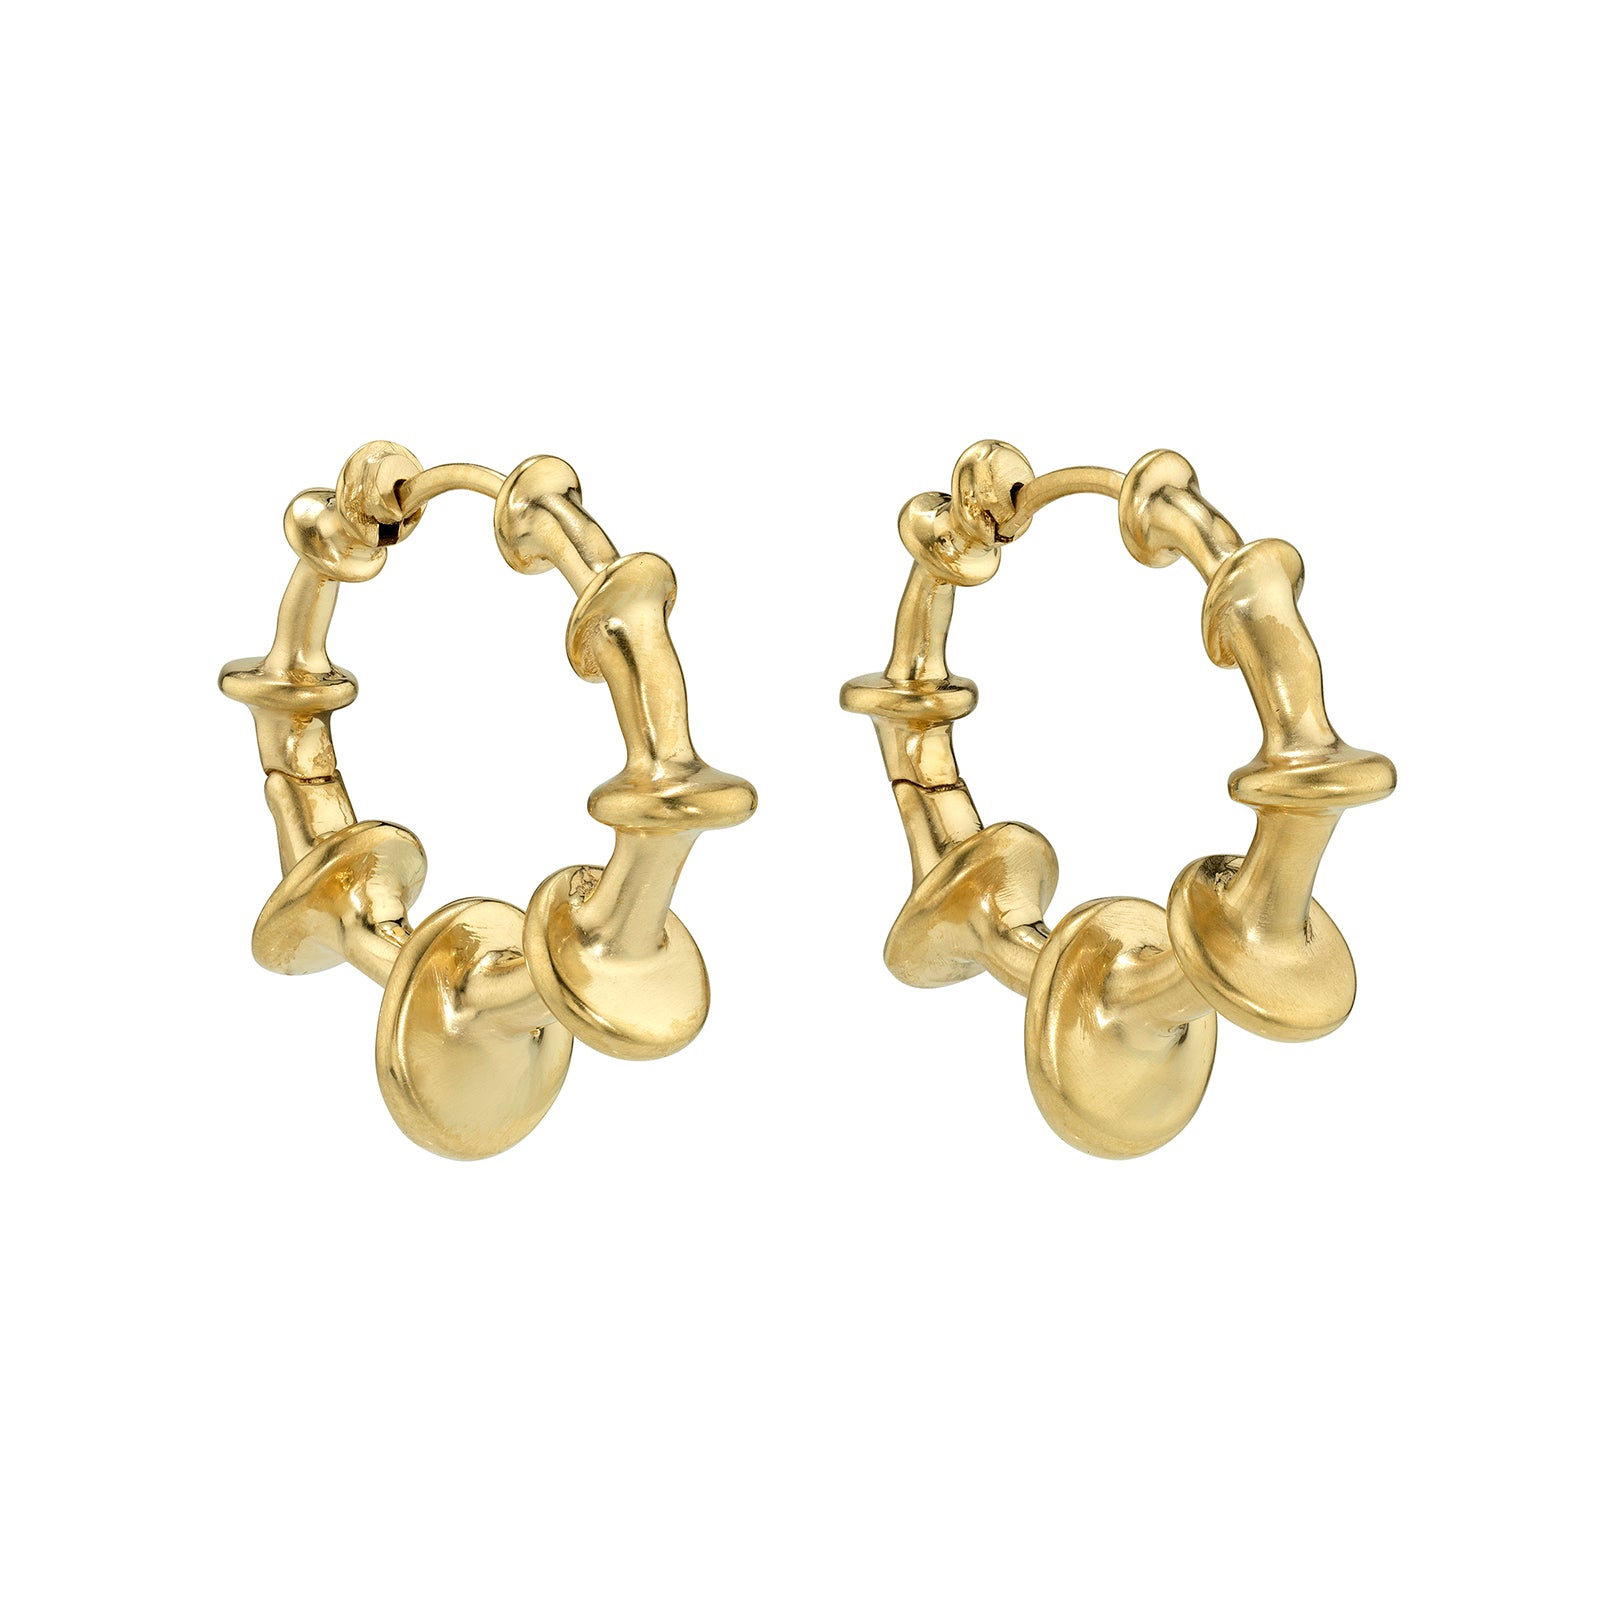 VRAM Chrona Hoops - Earrings - Broken English Jewelry